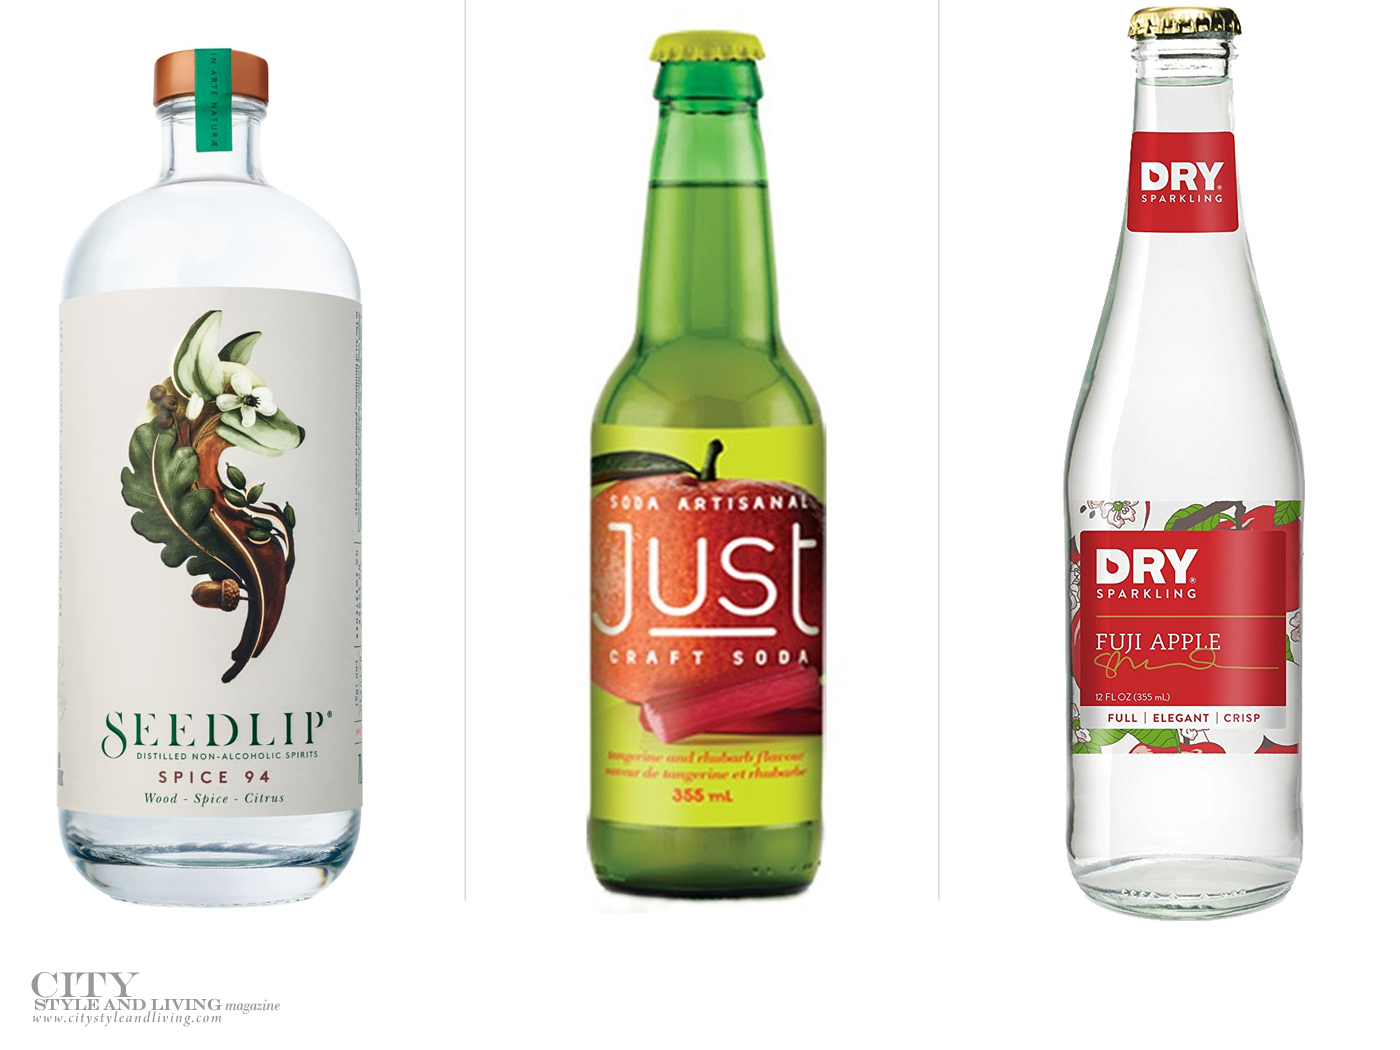 City Style and Living Magazine wines and spirits Summer 2018 non alcoholic beverages